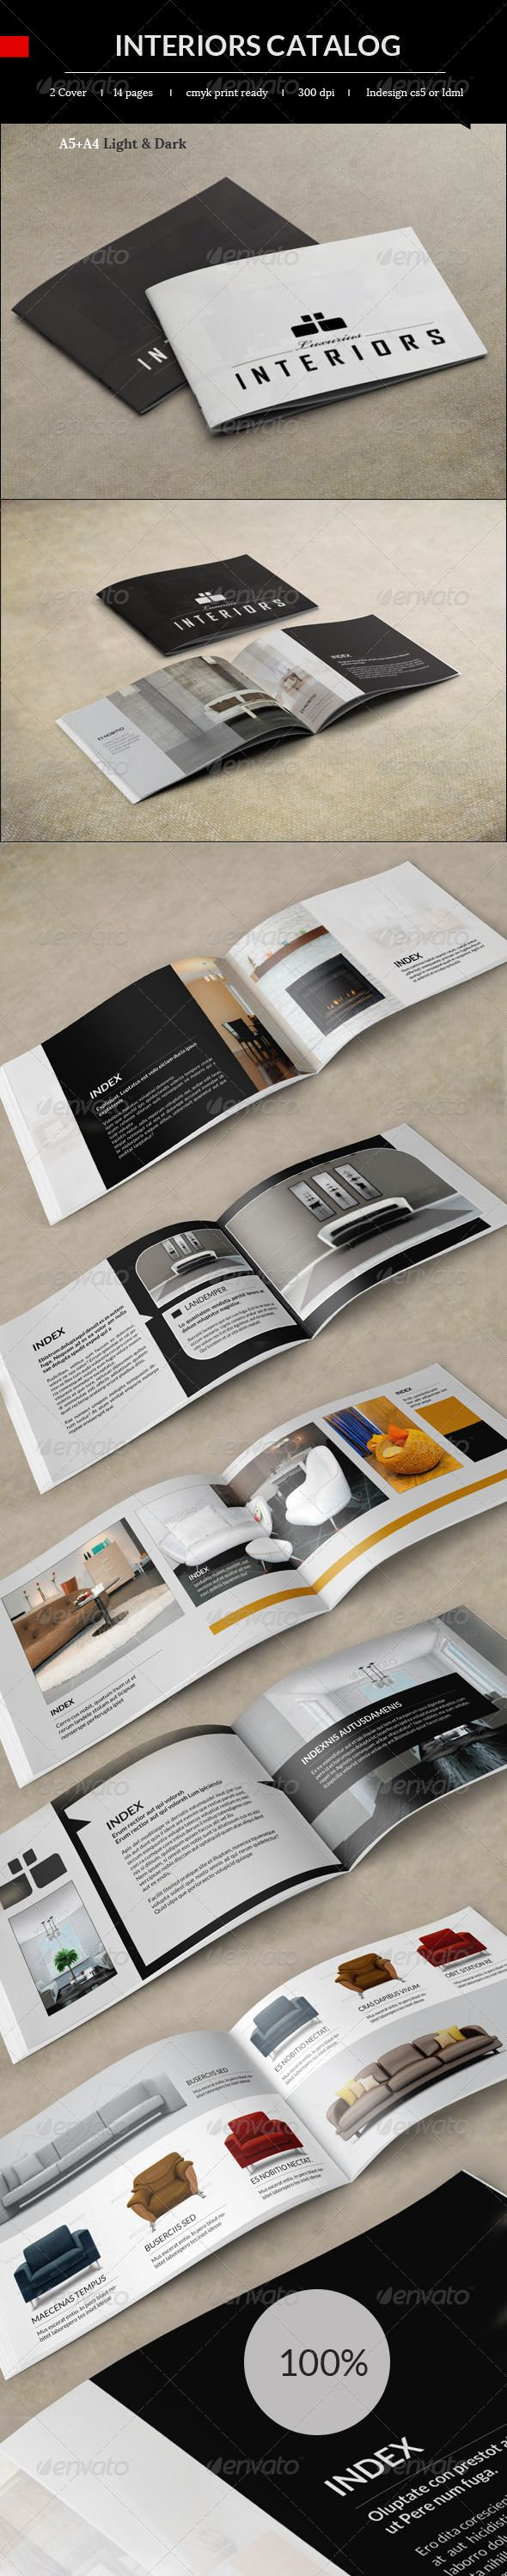 Visual Research for TSAOA Redesign. Interiors Booklet Catalog  #GraphicRiver         14 Pages 210×148mm with bleed lines 300 DPI CMYK Print Ready idml and .indd files included  The fonts used are free.